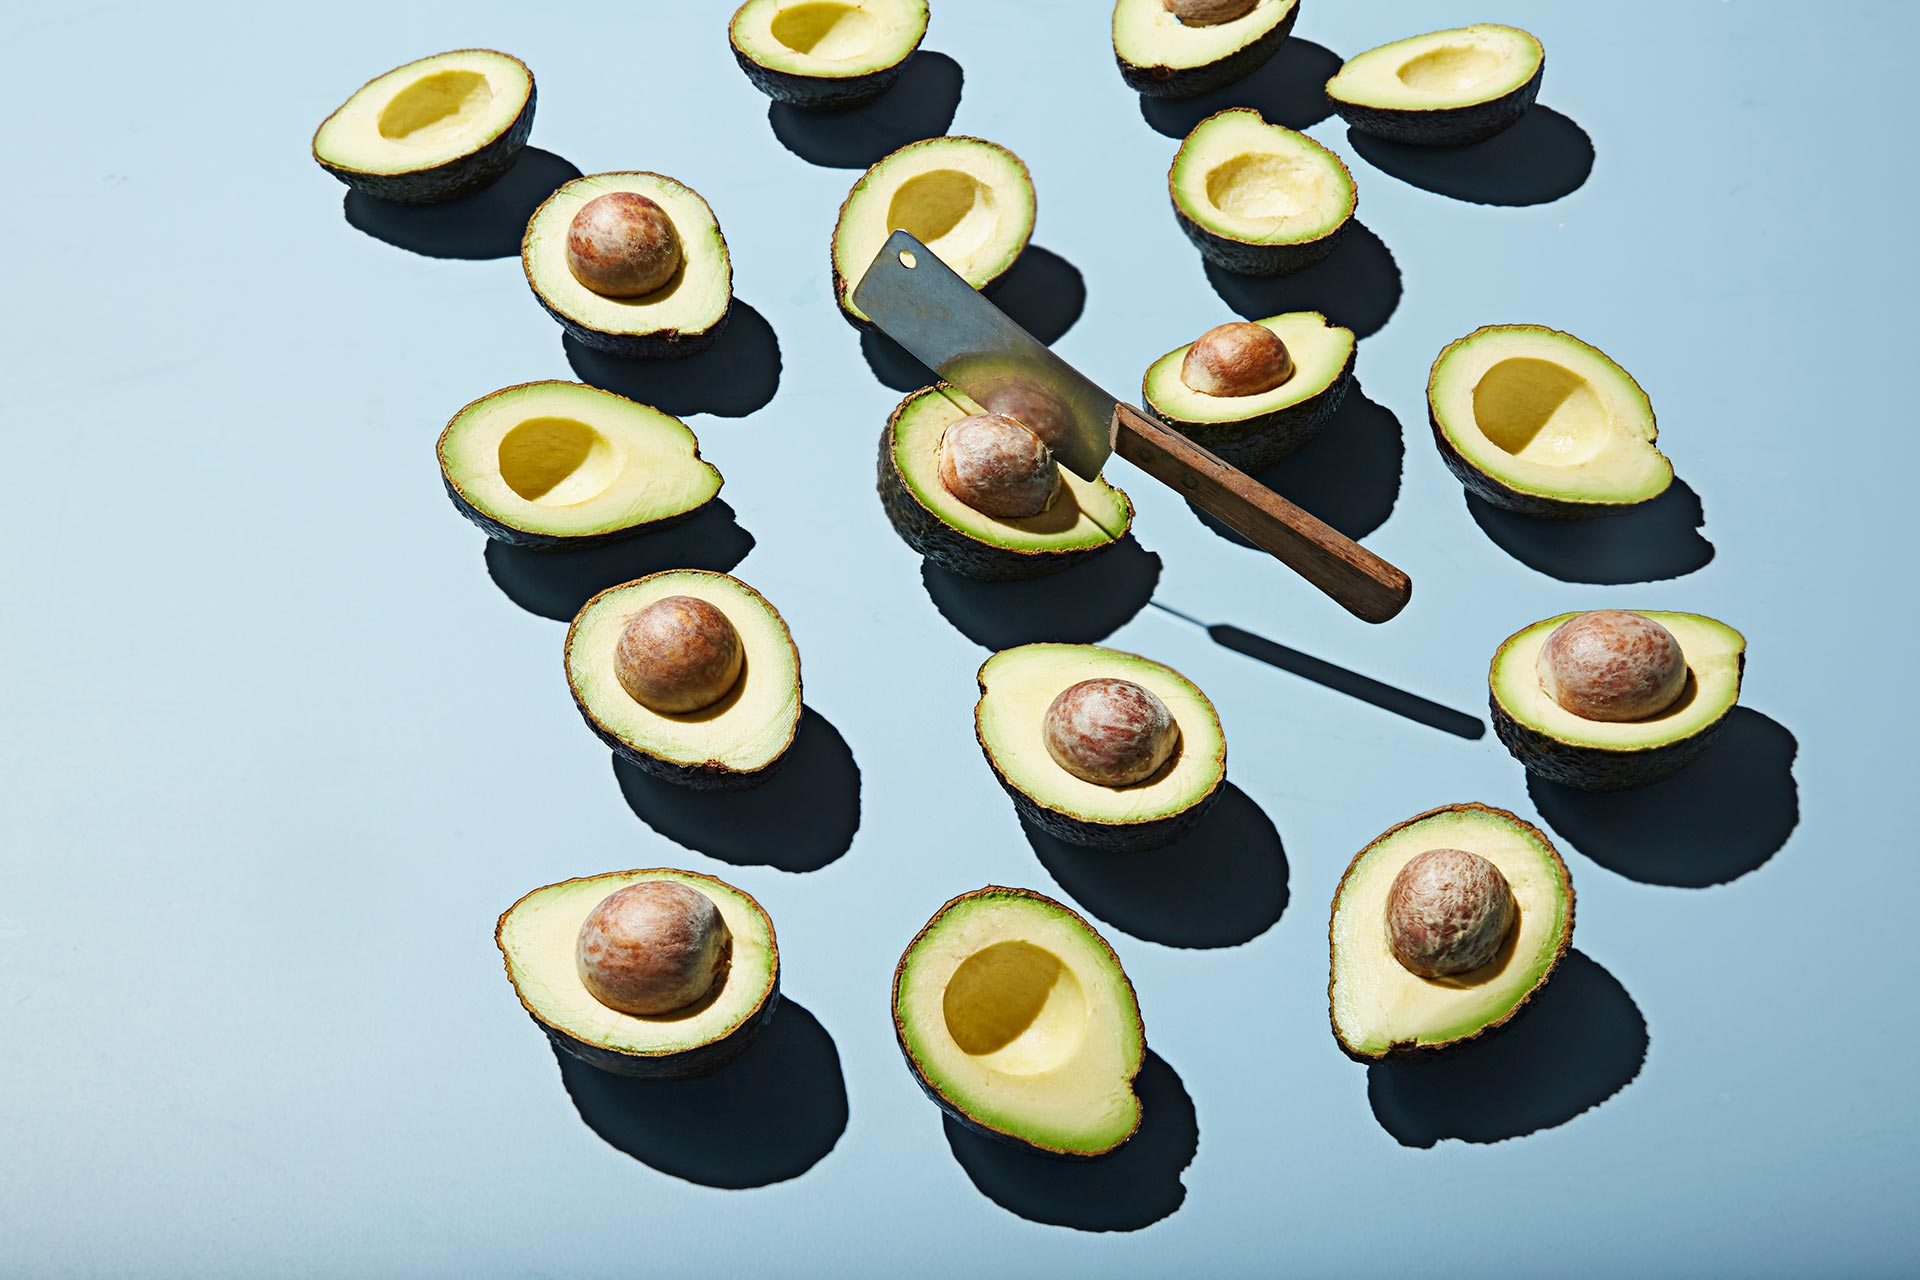 Many Avocados with Cleaver